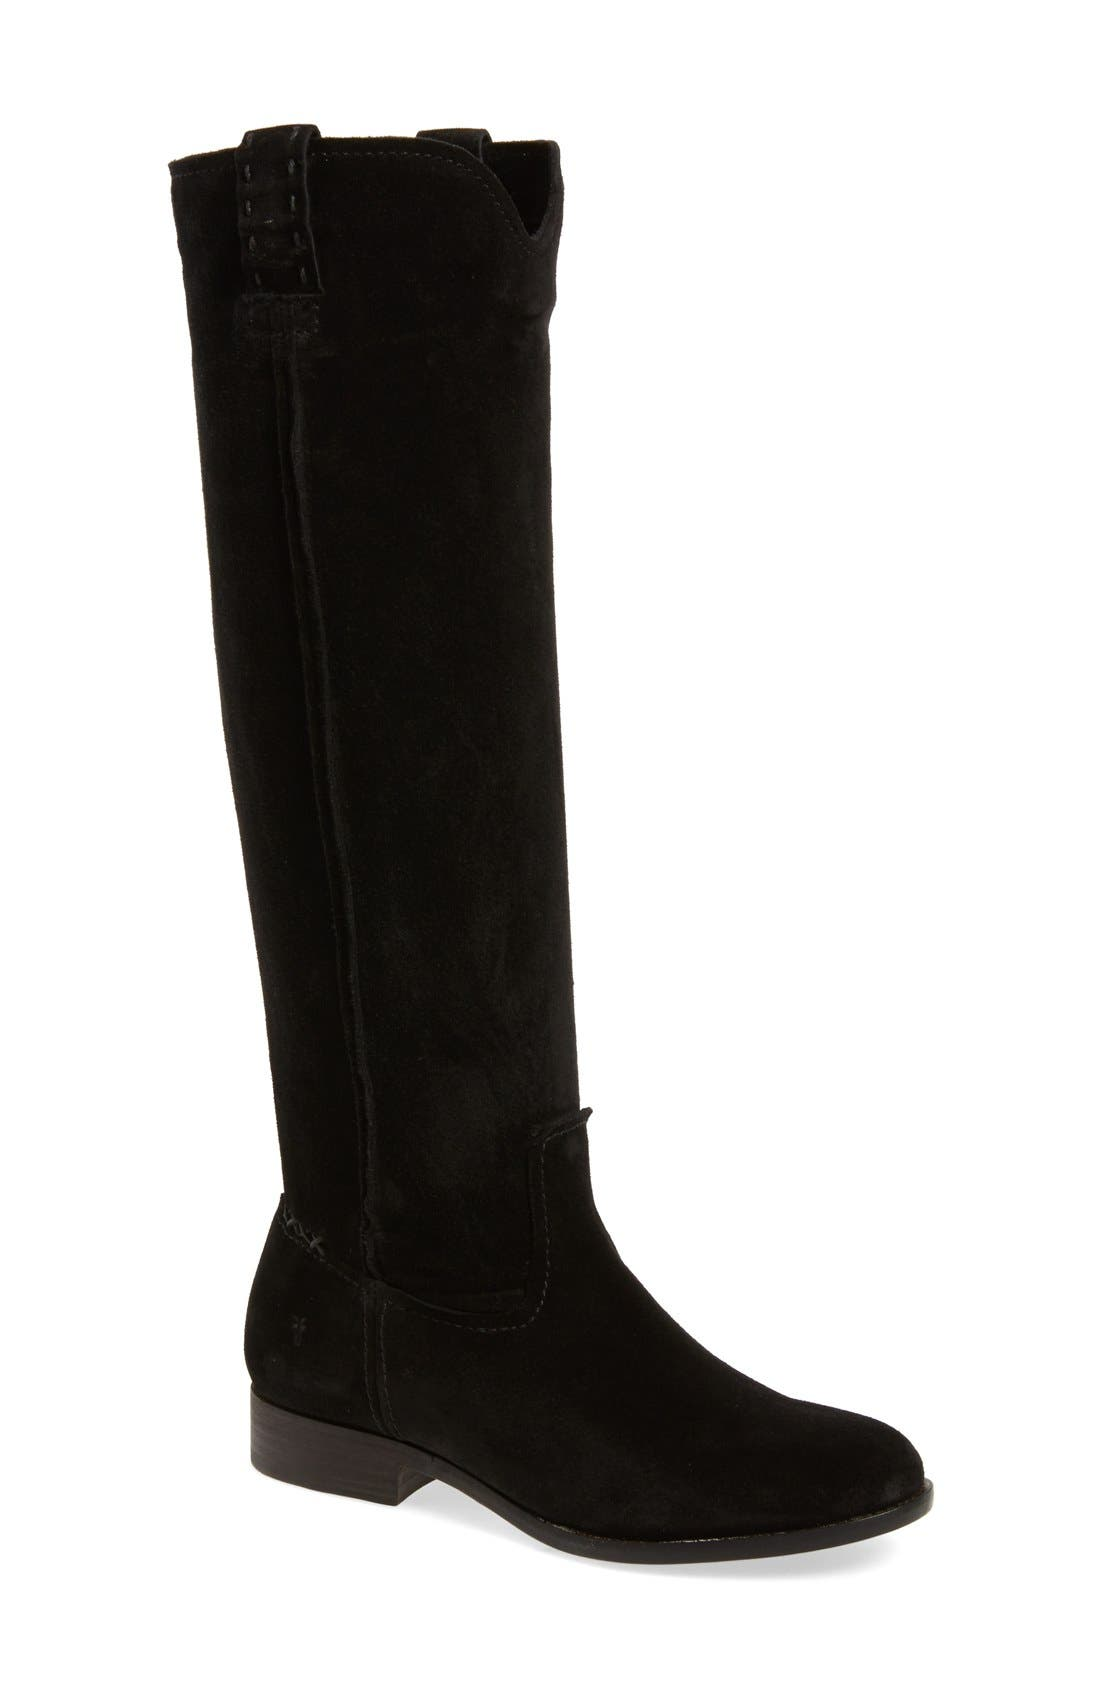 Alternate Image 1 Selected - Frye 'Cara' Tall Boot (Women)